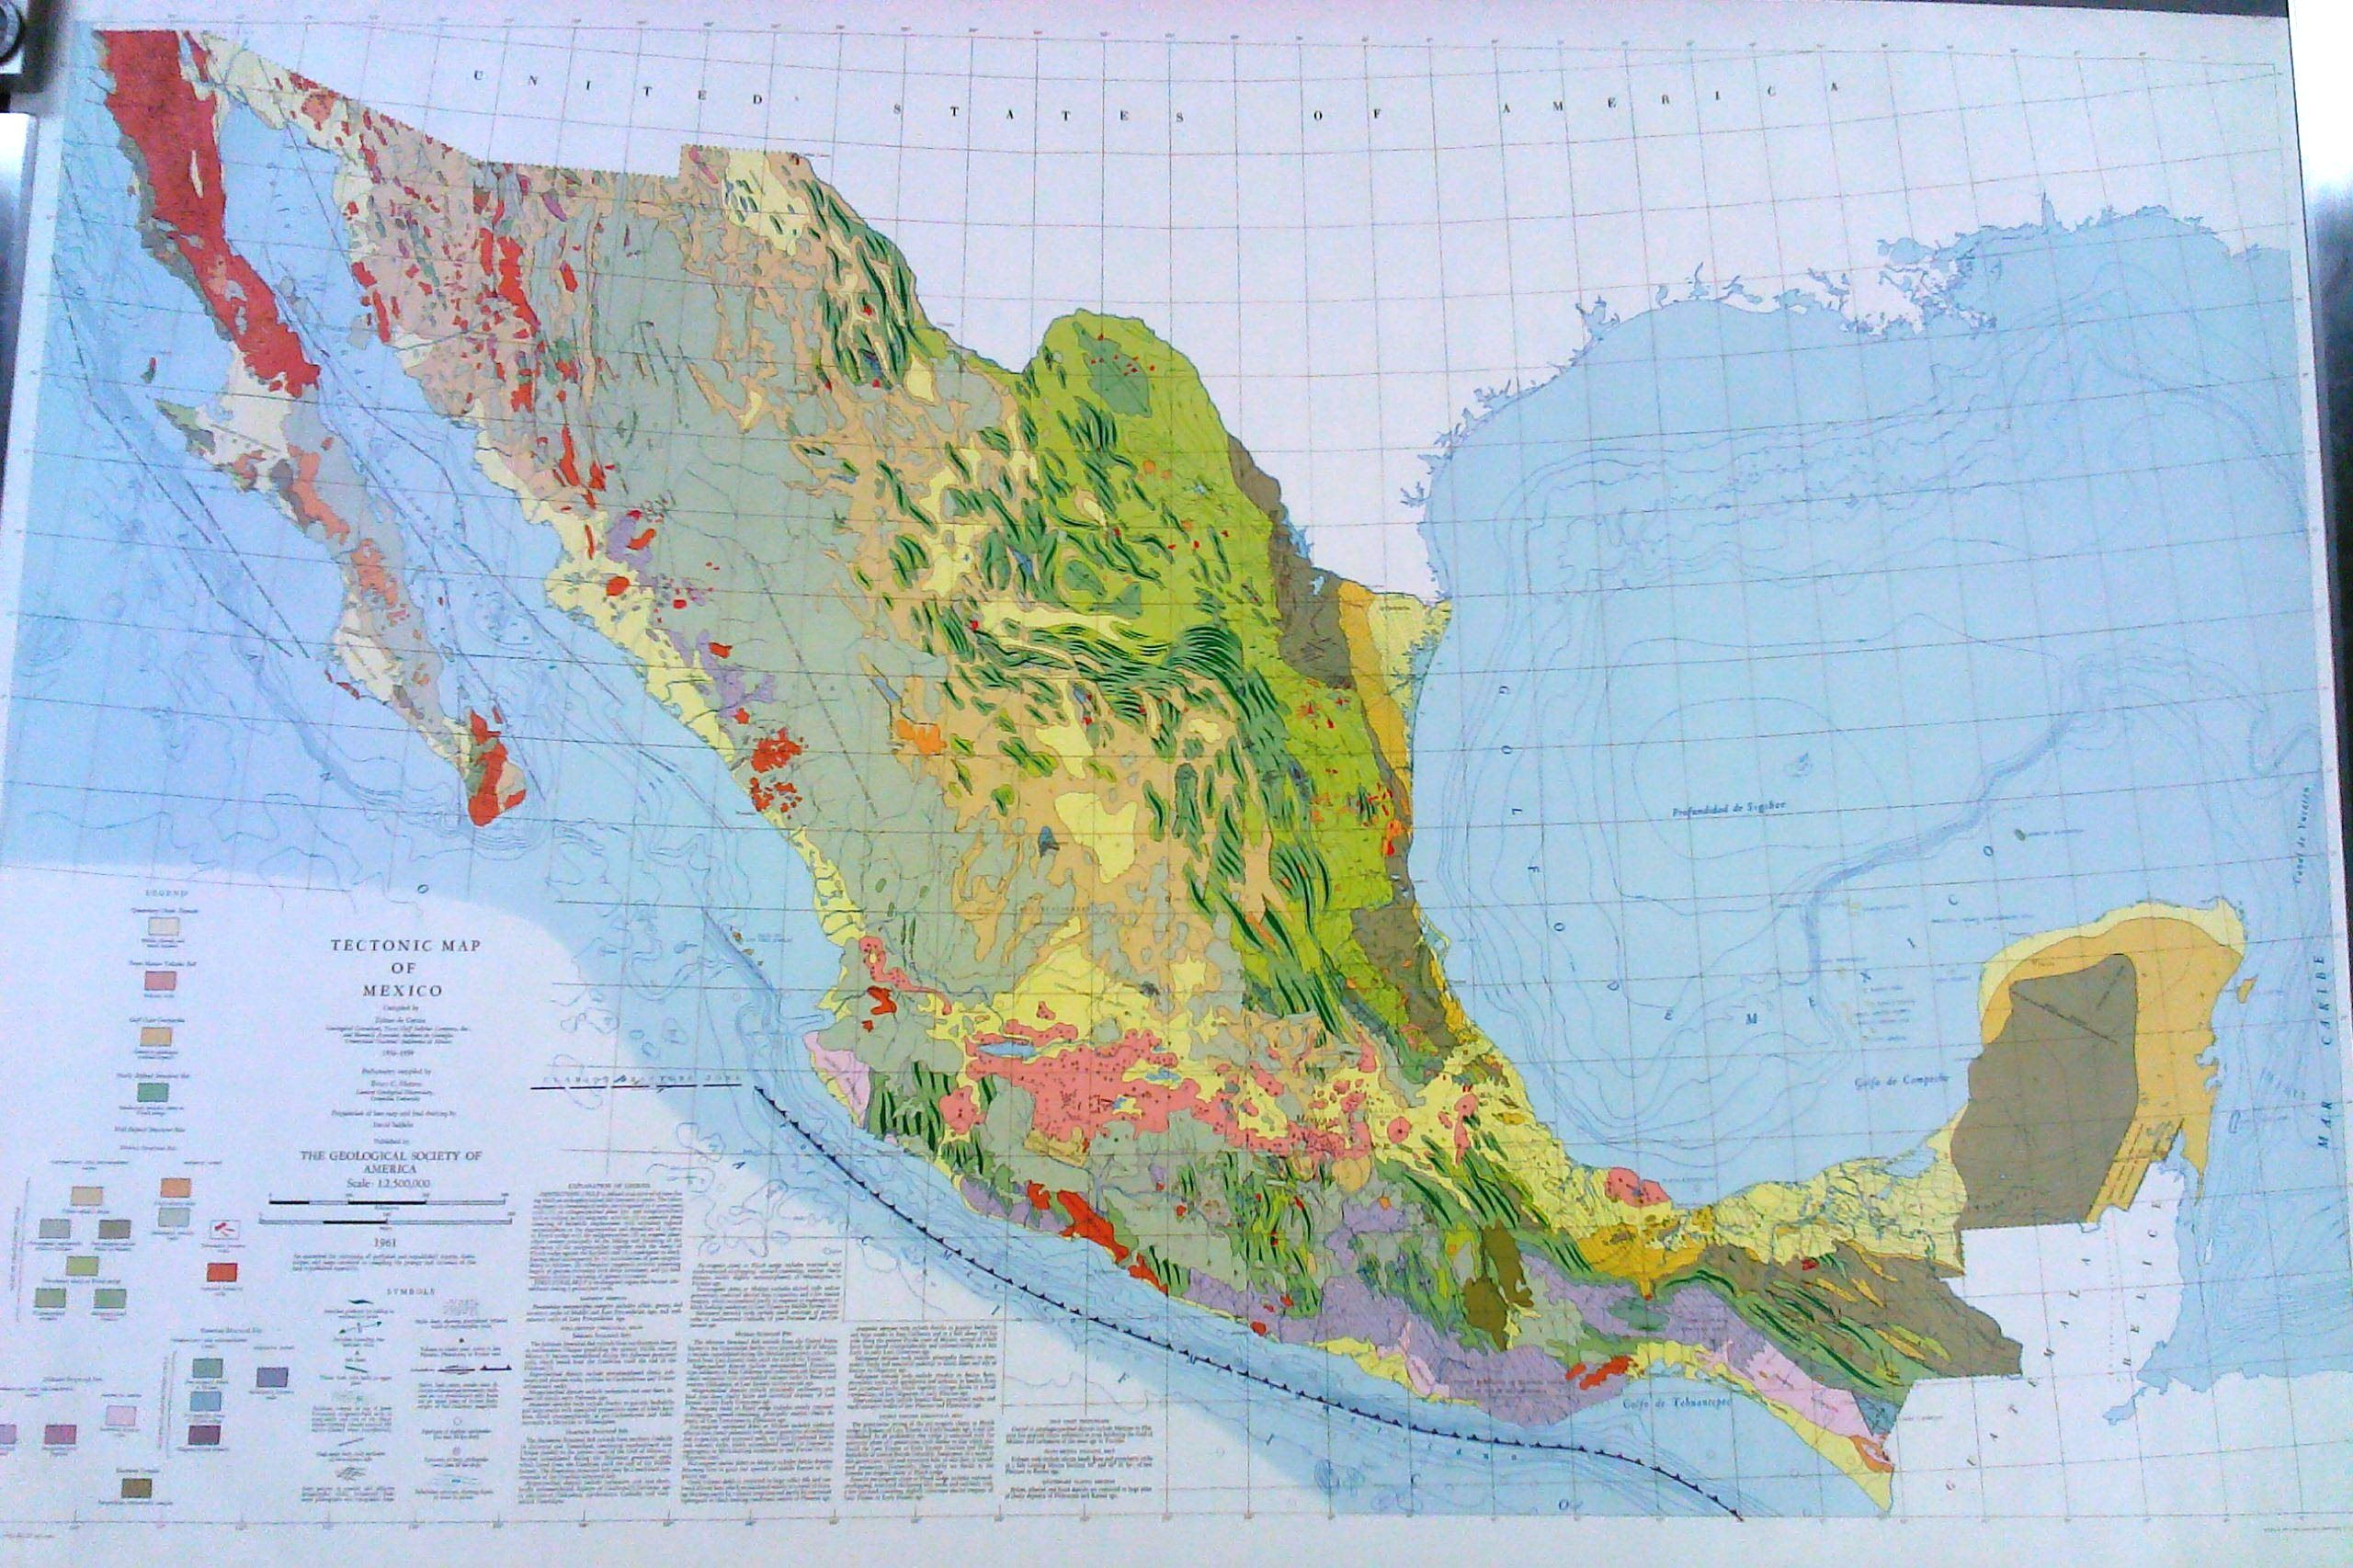 tectonic map of mexico the geological society of america 1961